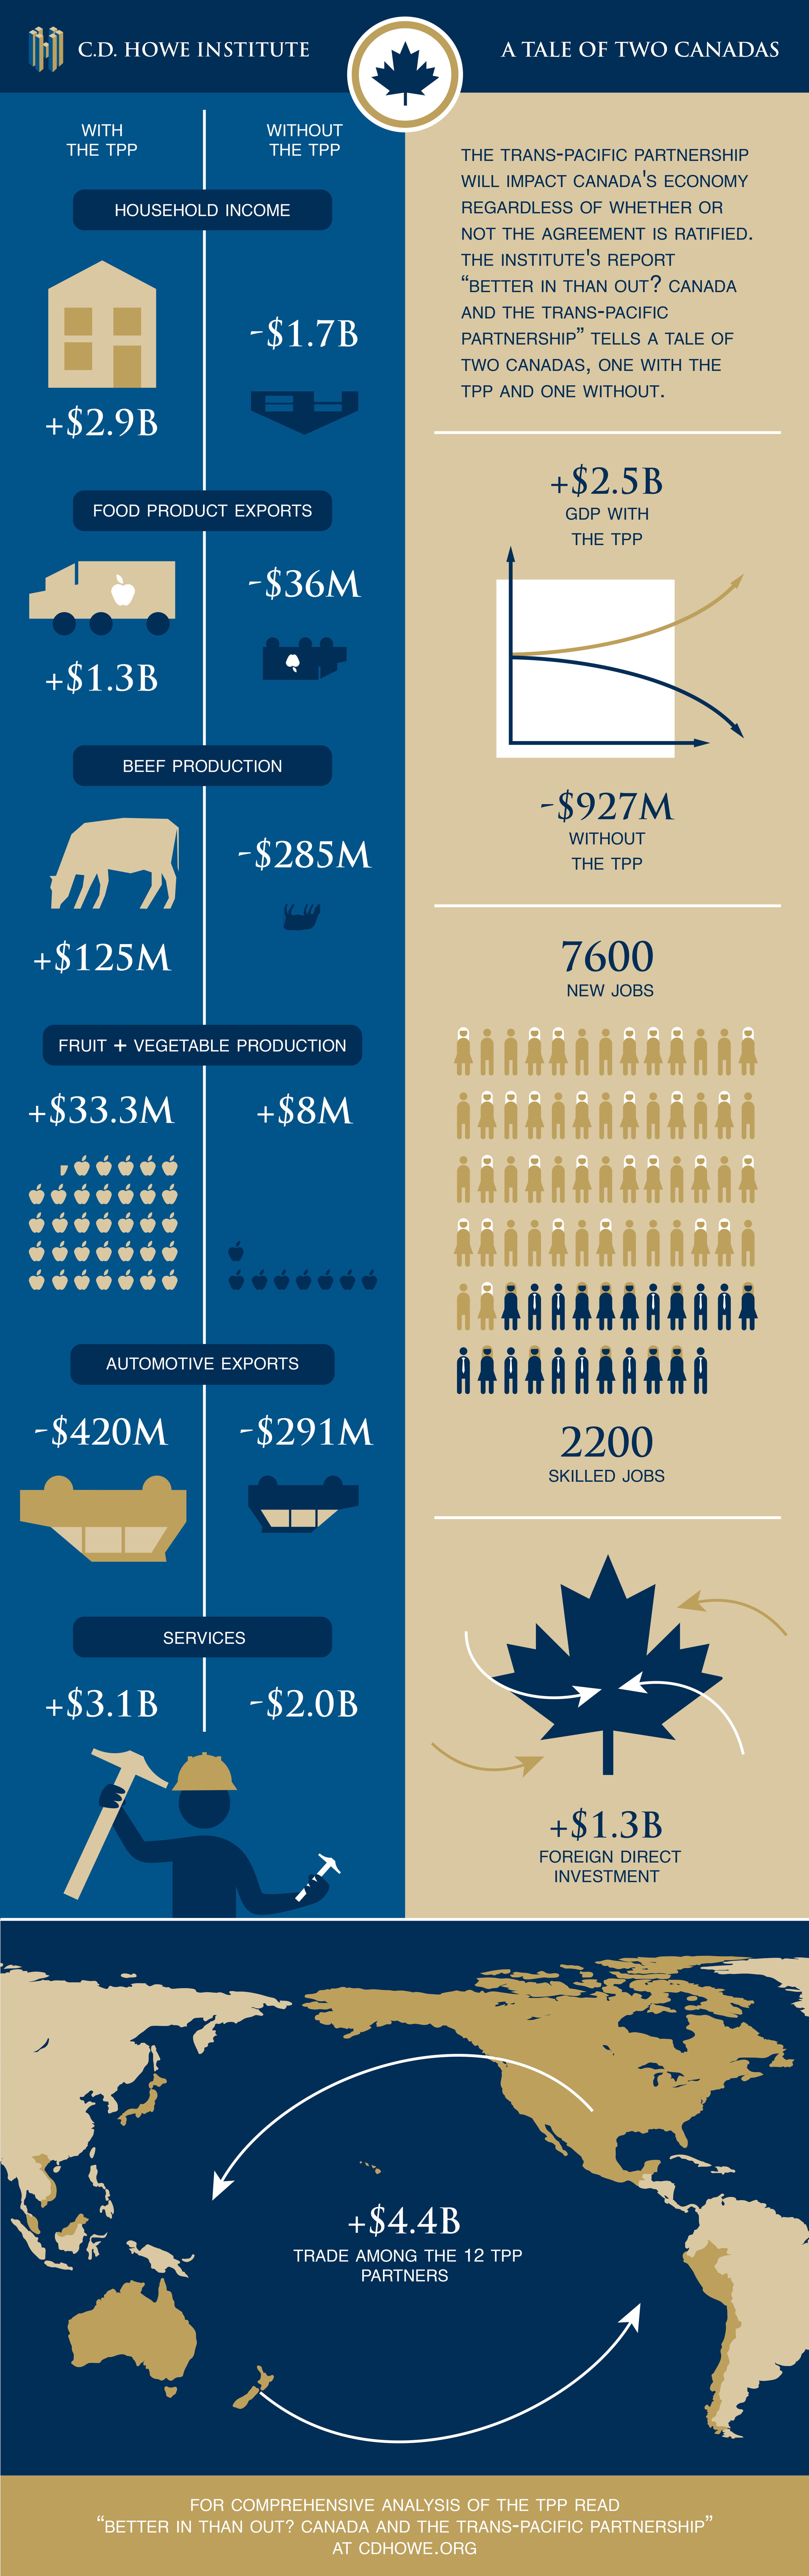 A Tale of Two Canadas: Canada with and without the TPP